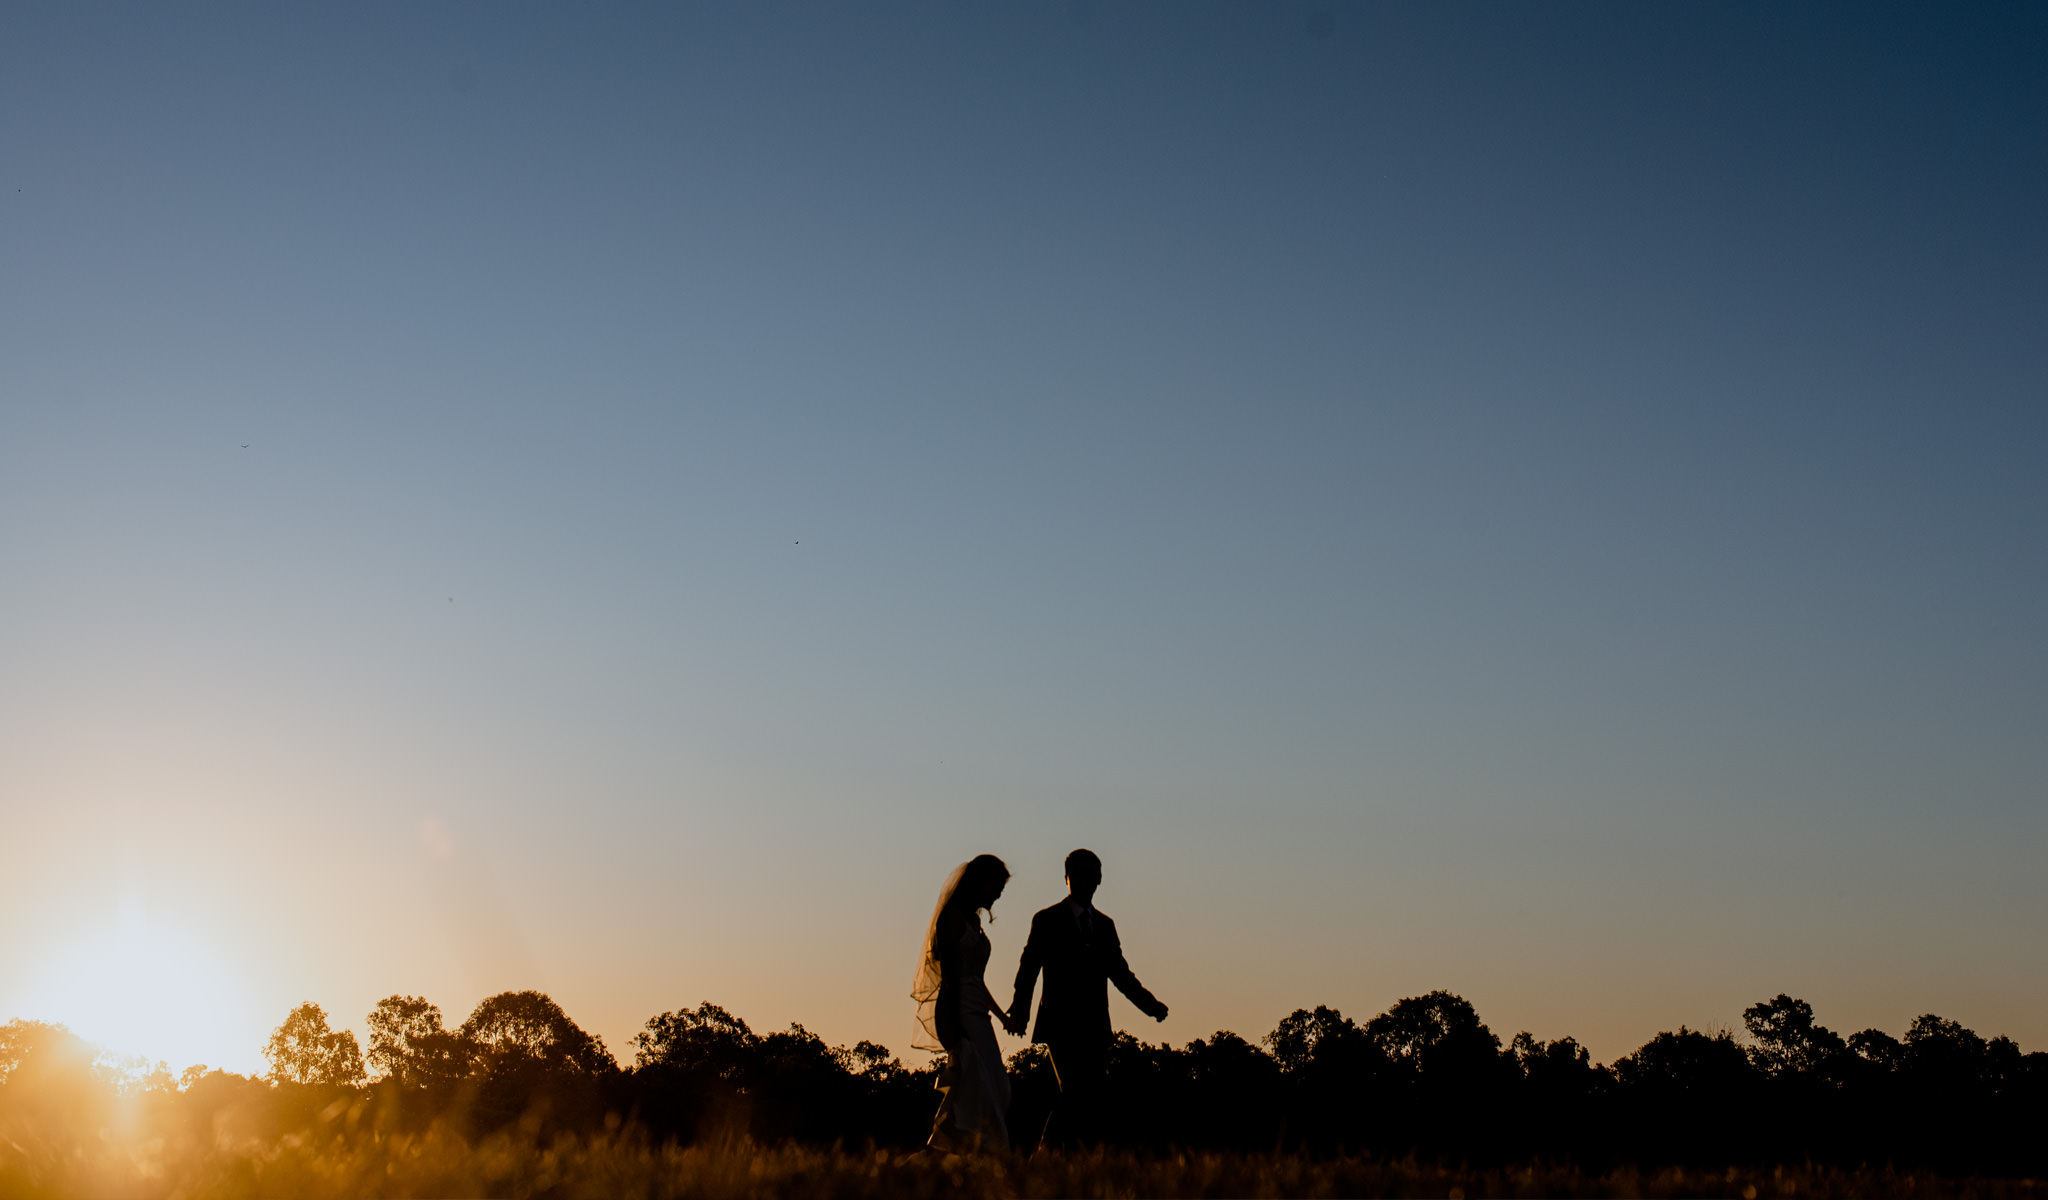 A silhouette of a man and a woman walking on an open field against a sunset